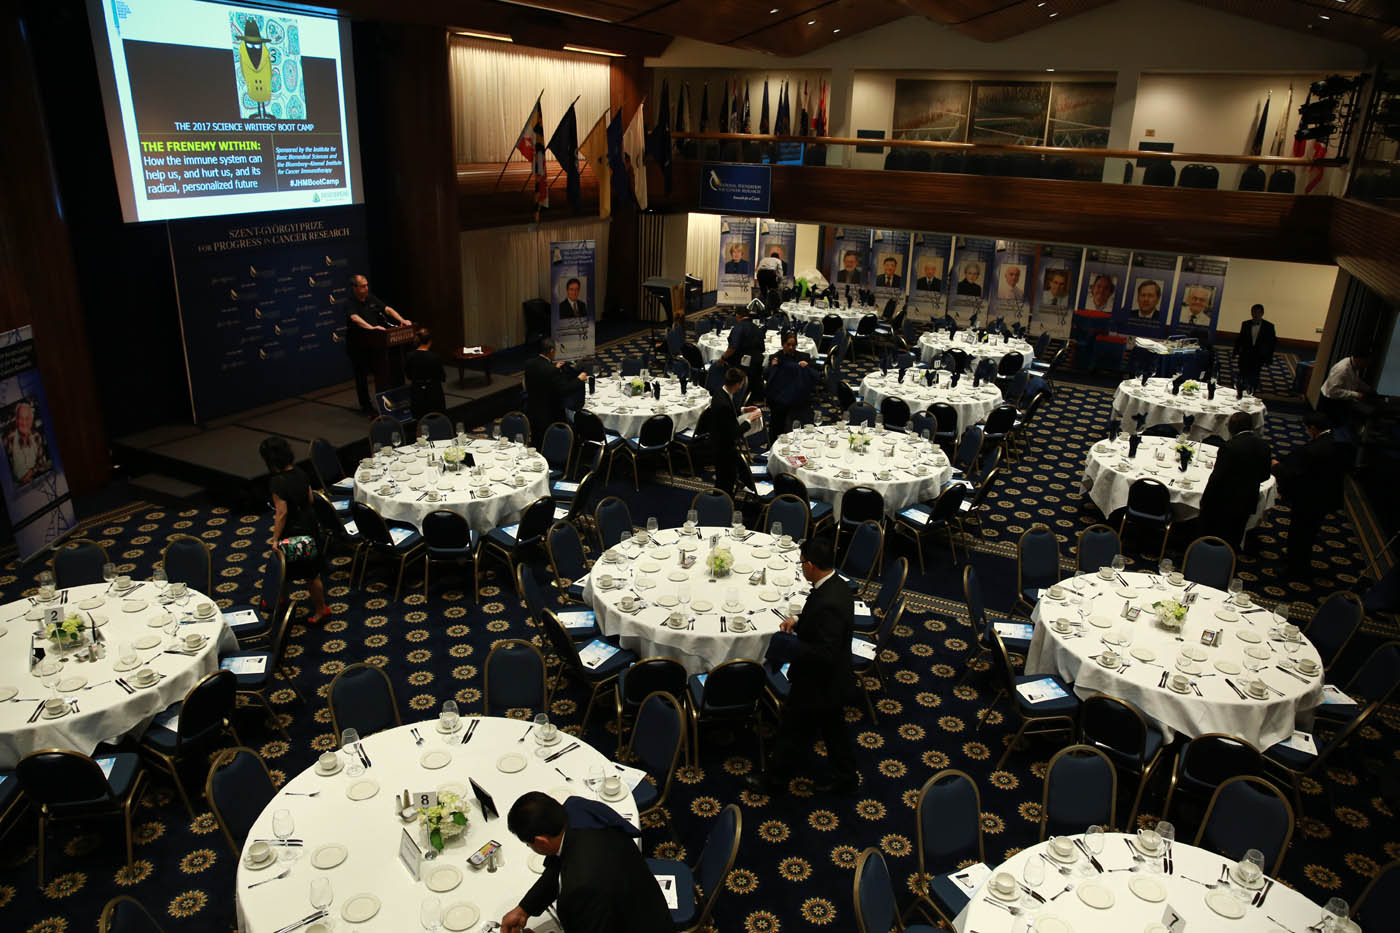 Preparation for the Szent-Györgyi Prize ceremony at the National Press Club